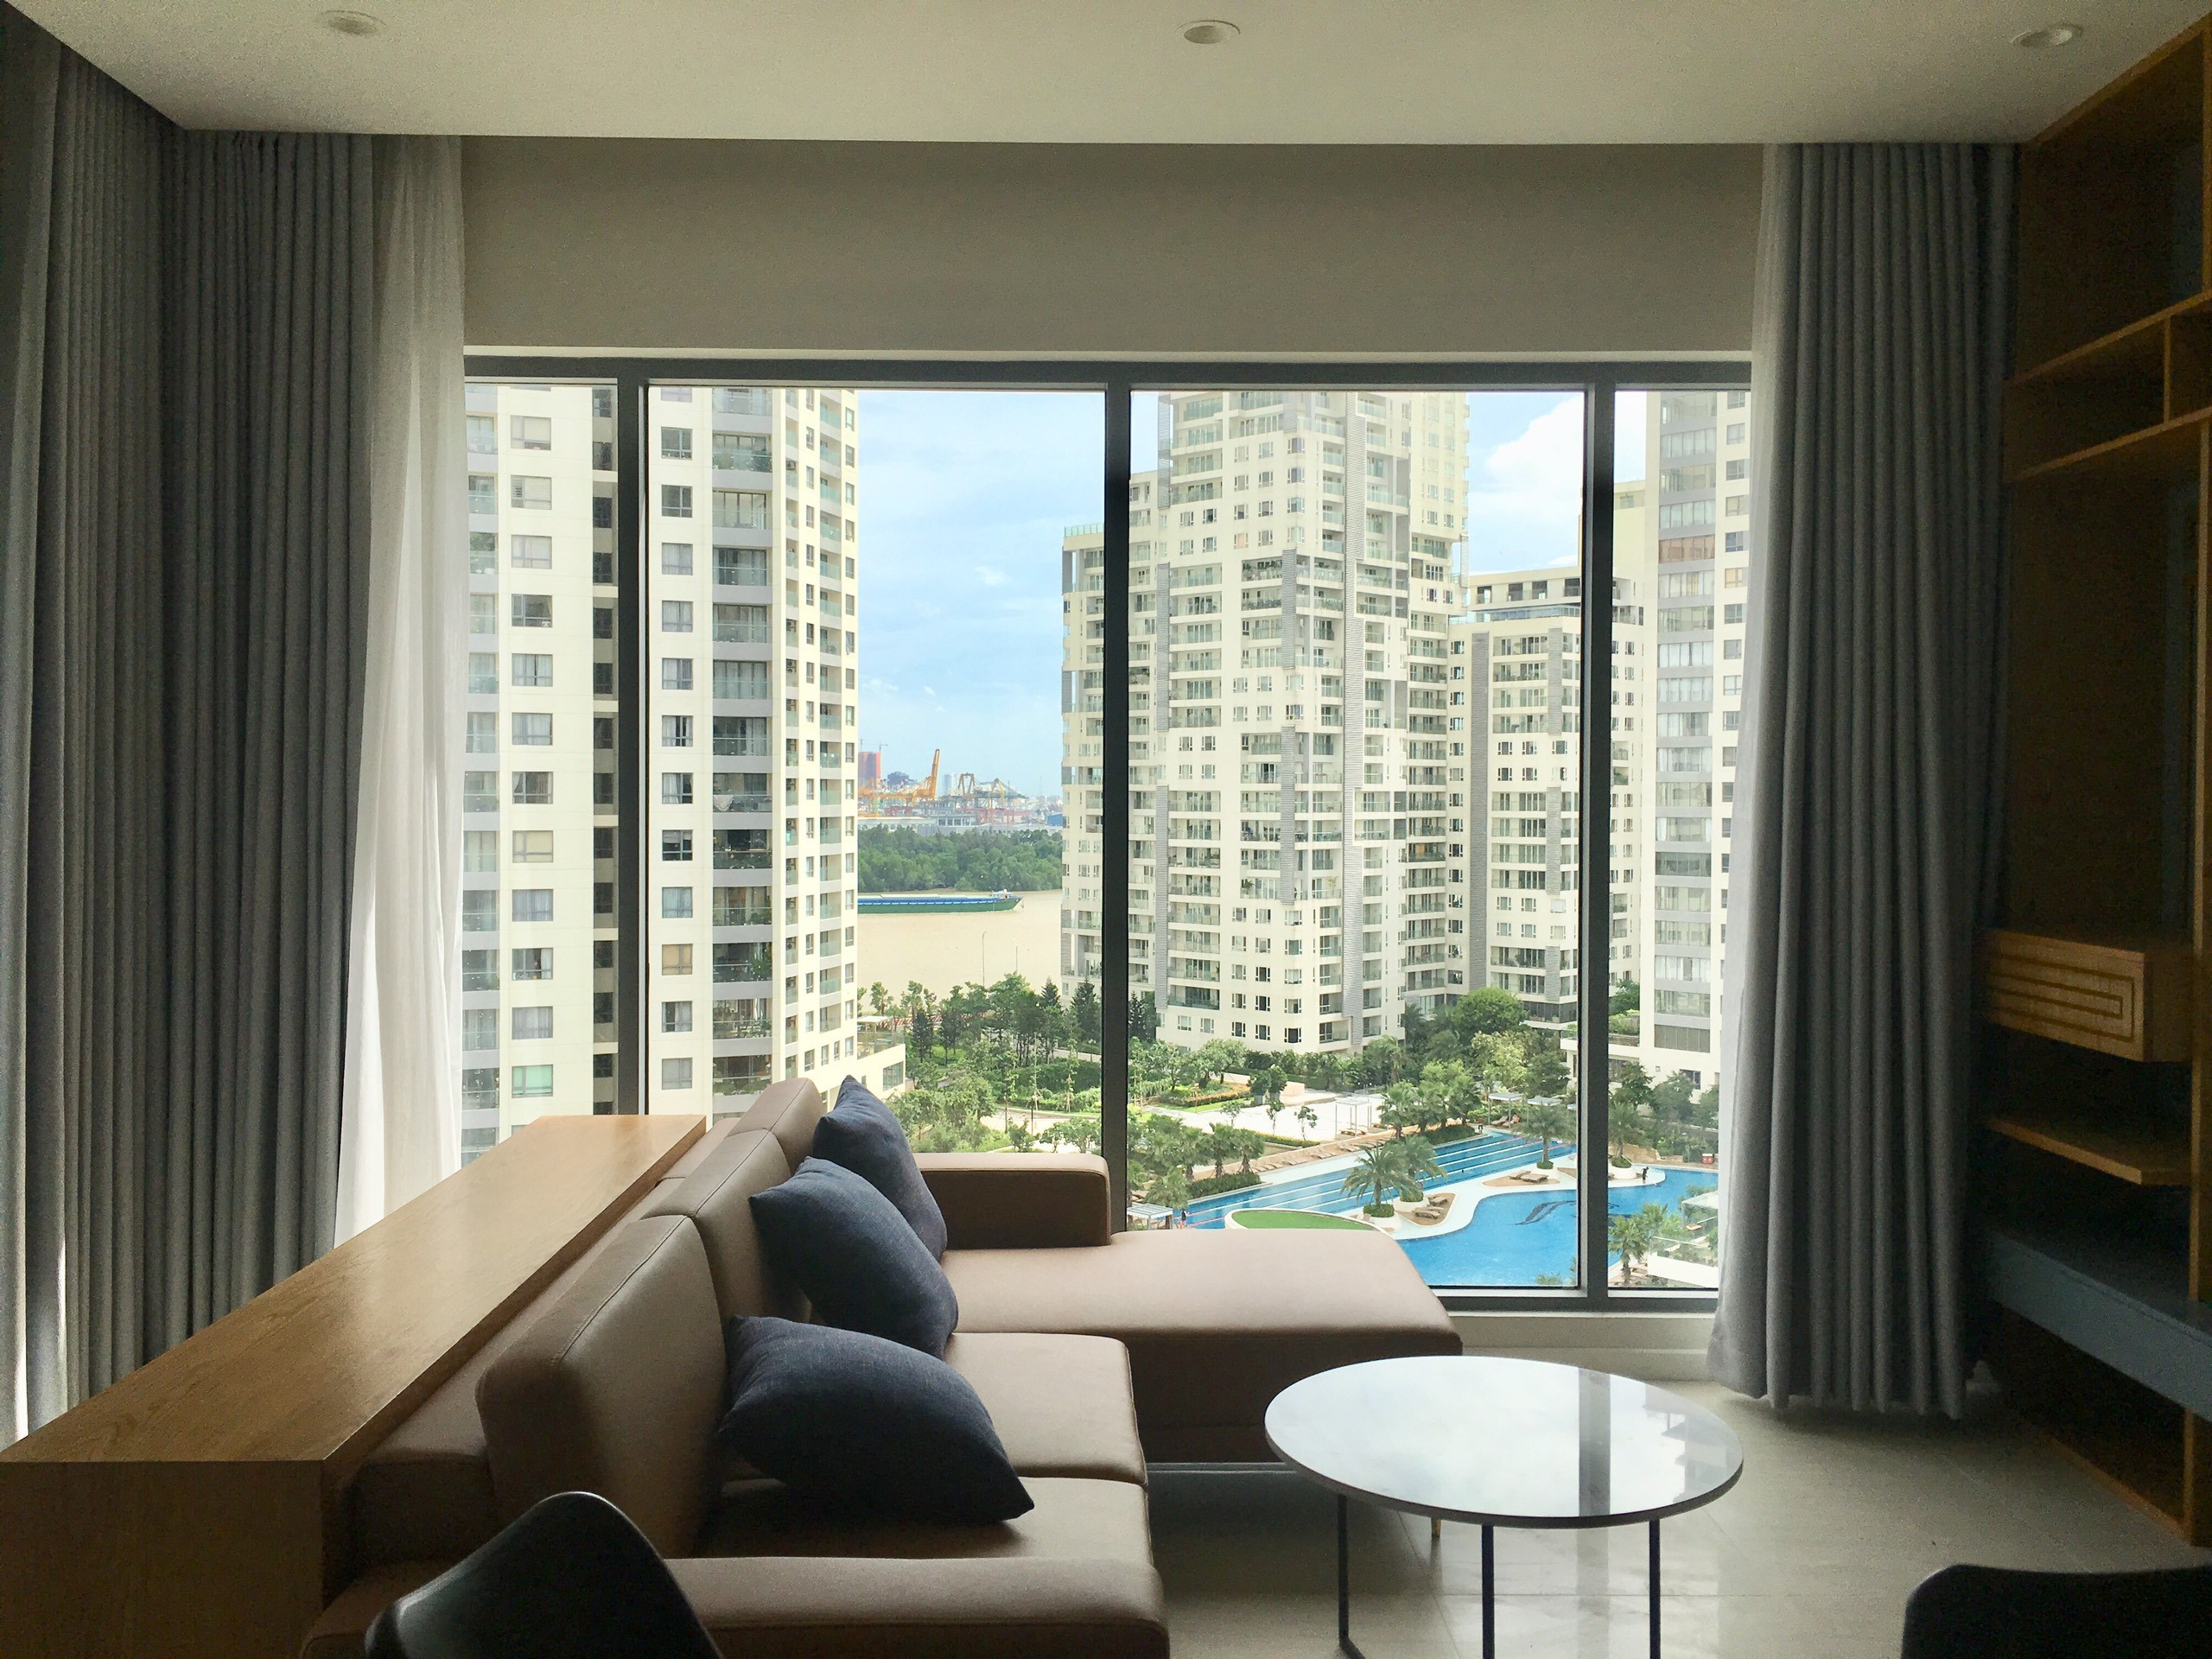 DI0953 - Diamond Island Apartment For Rent & Sale in Ho Chi Minh City - 2 bedroom